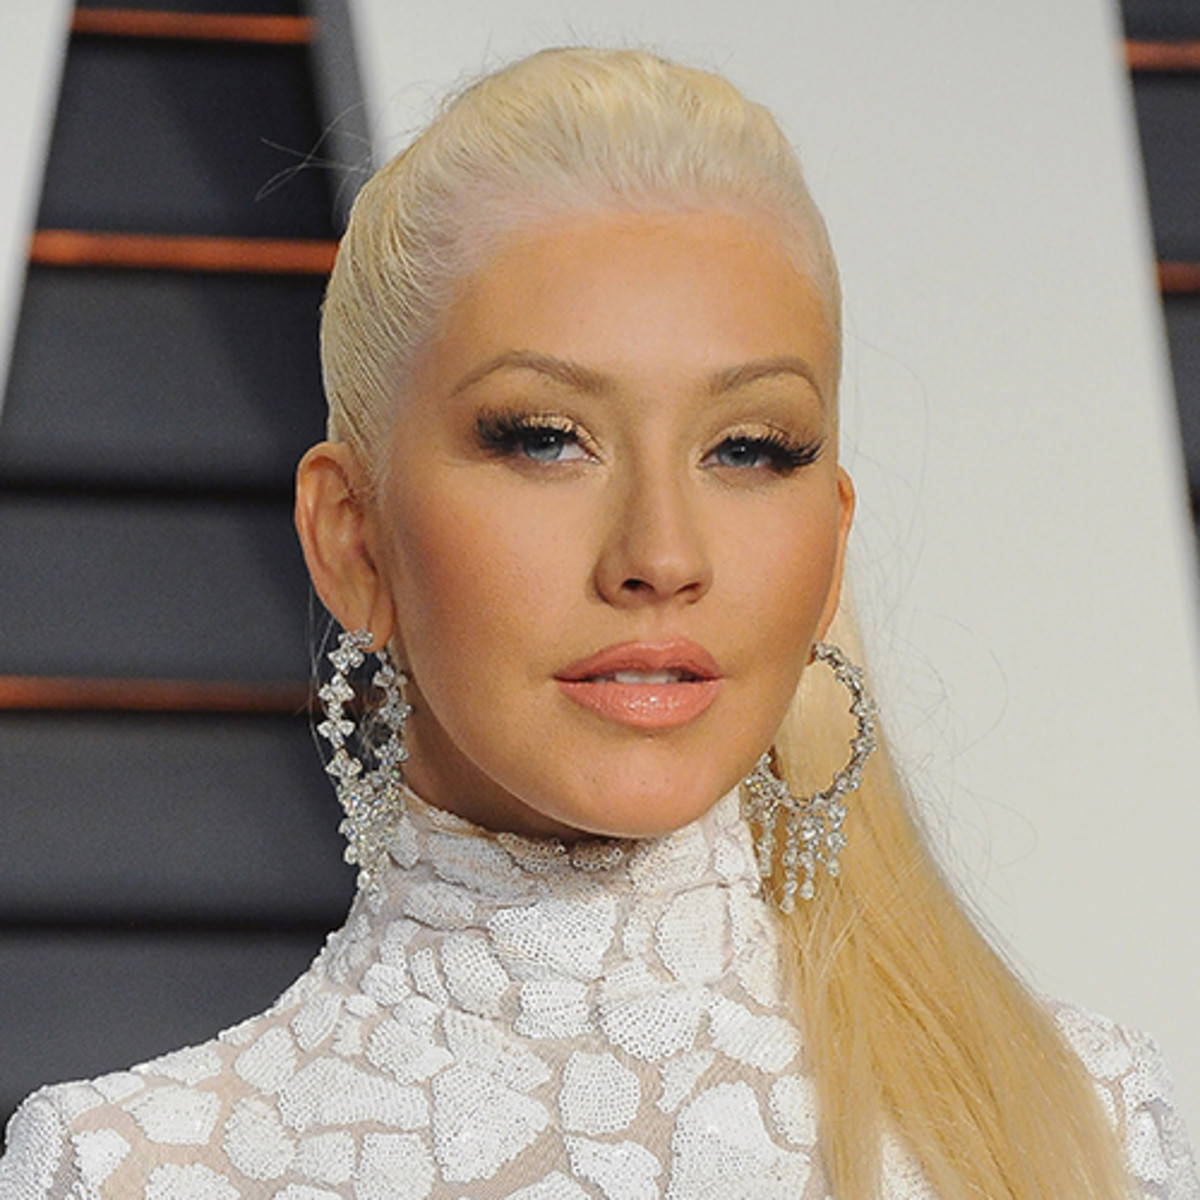 """christina-aguilera-says-shes-done-dieting-despite-still-being-hypercritical-of-her-body-image-at-times"""